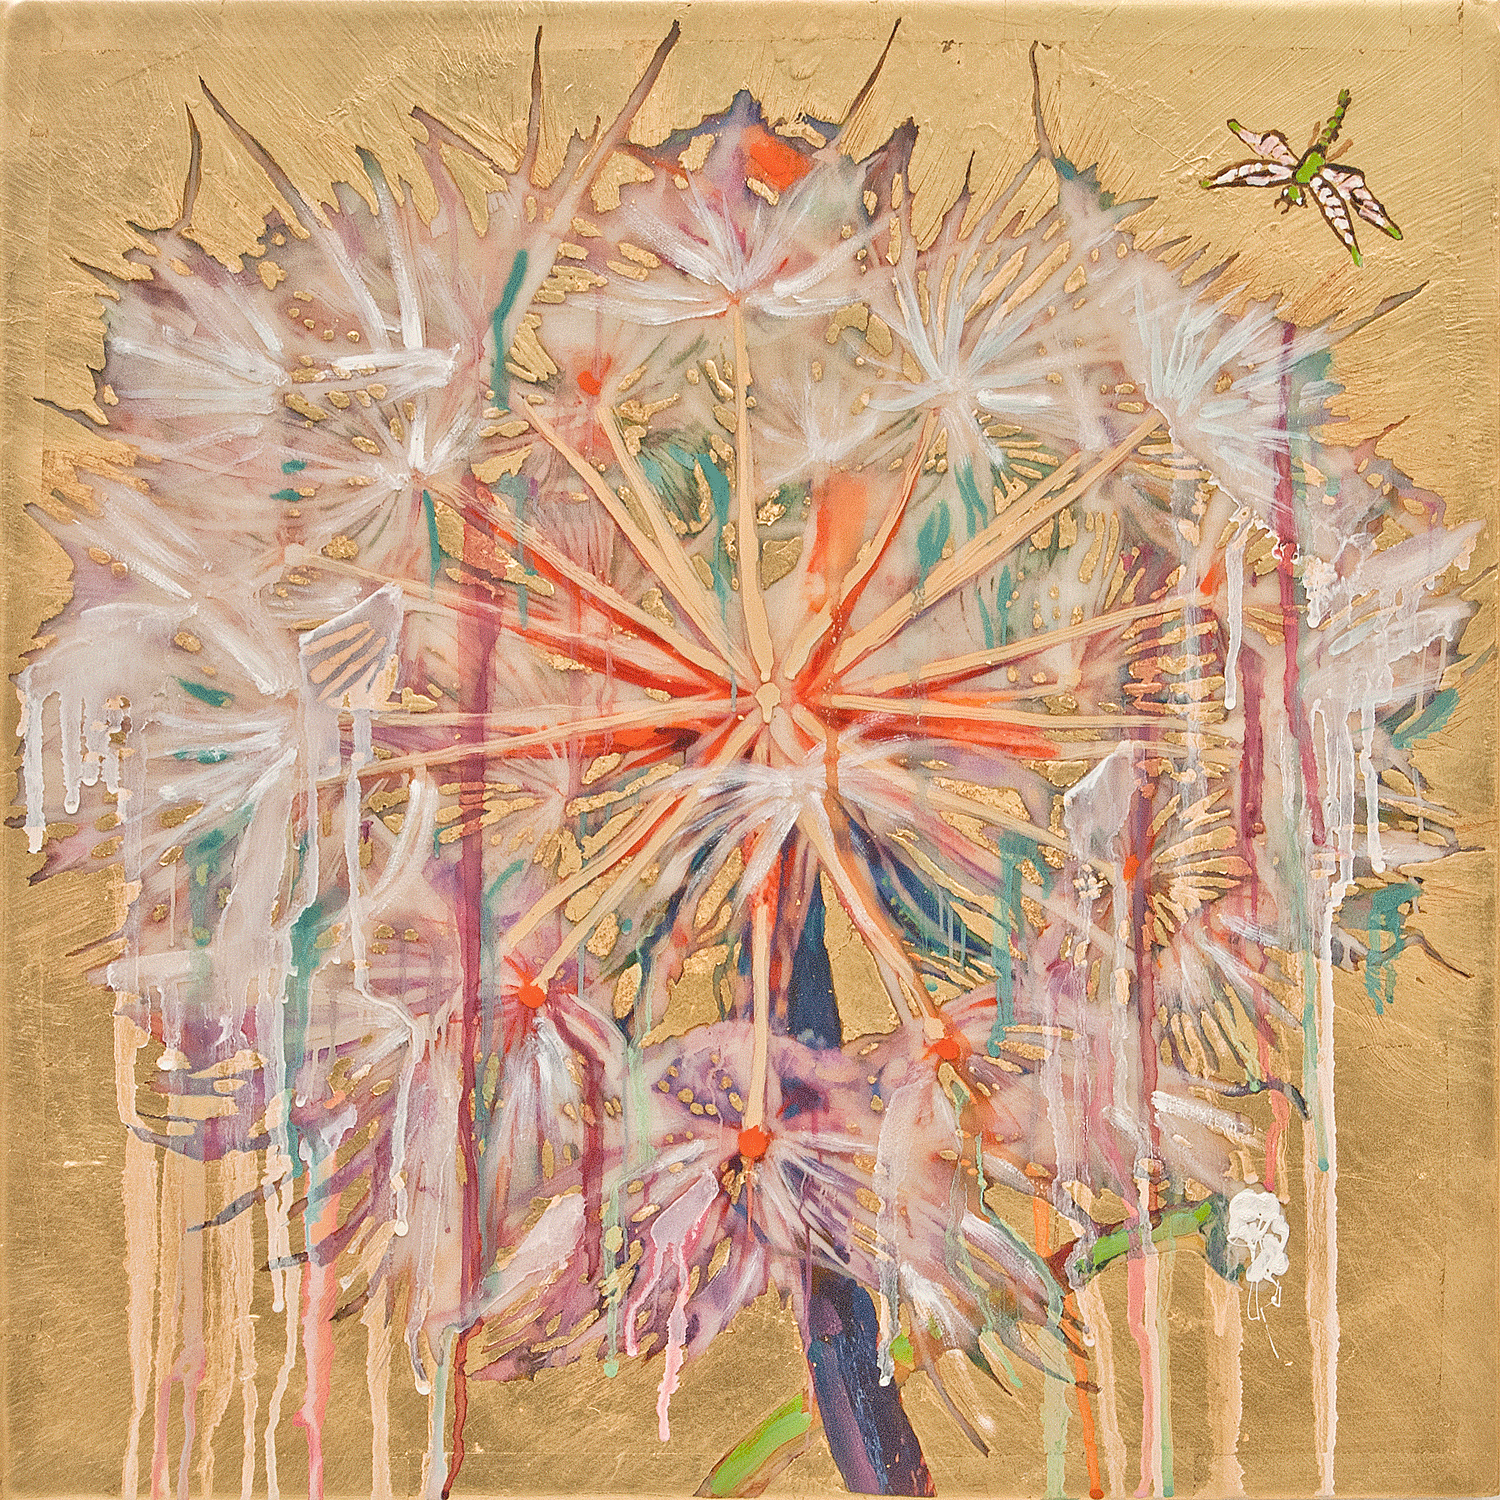 Dandelion with Dragonfly, 2017, Mixed Media, 20.5 x 20.5  Inches